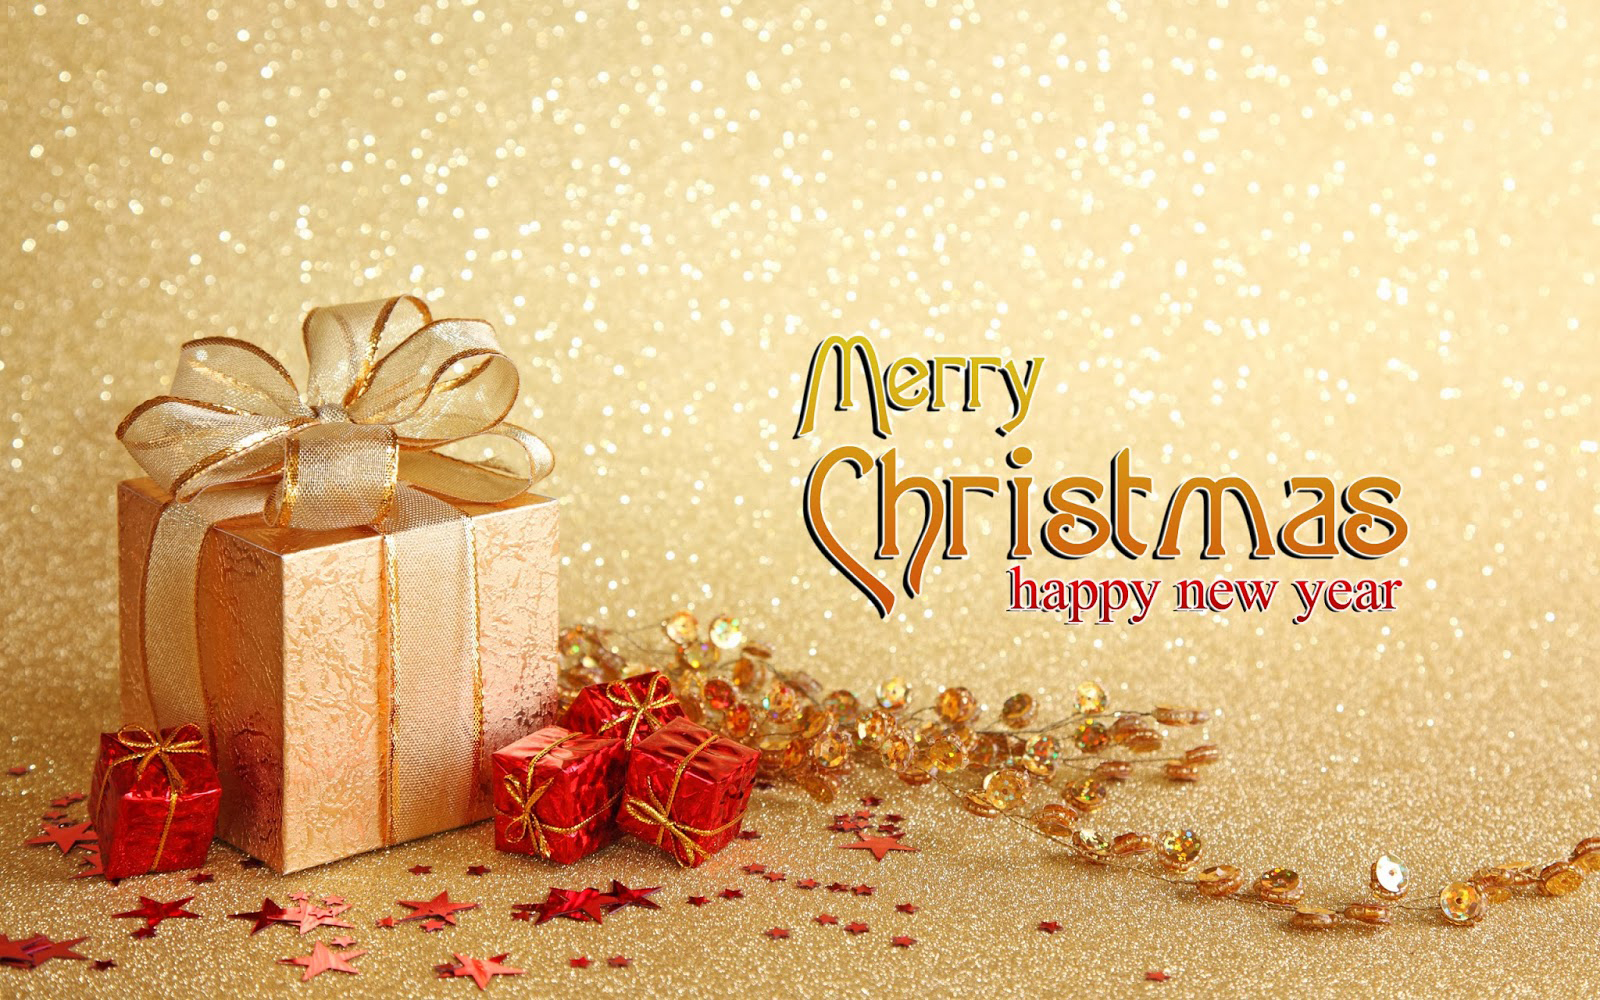 Top 100 merry christmas wishes quotes messages christmas quotes merry christmas wishes kristyandbryce Choice Image